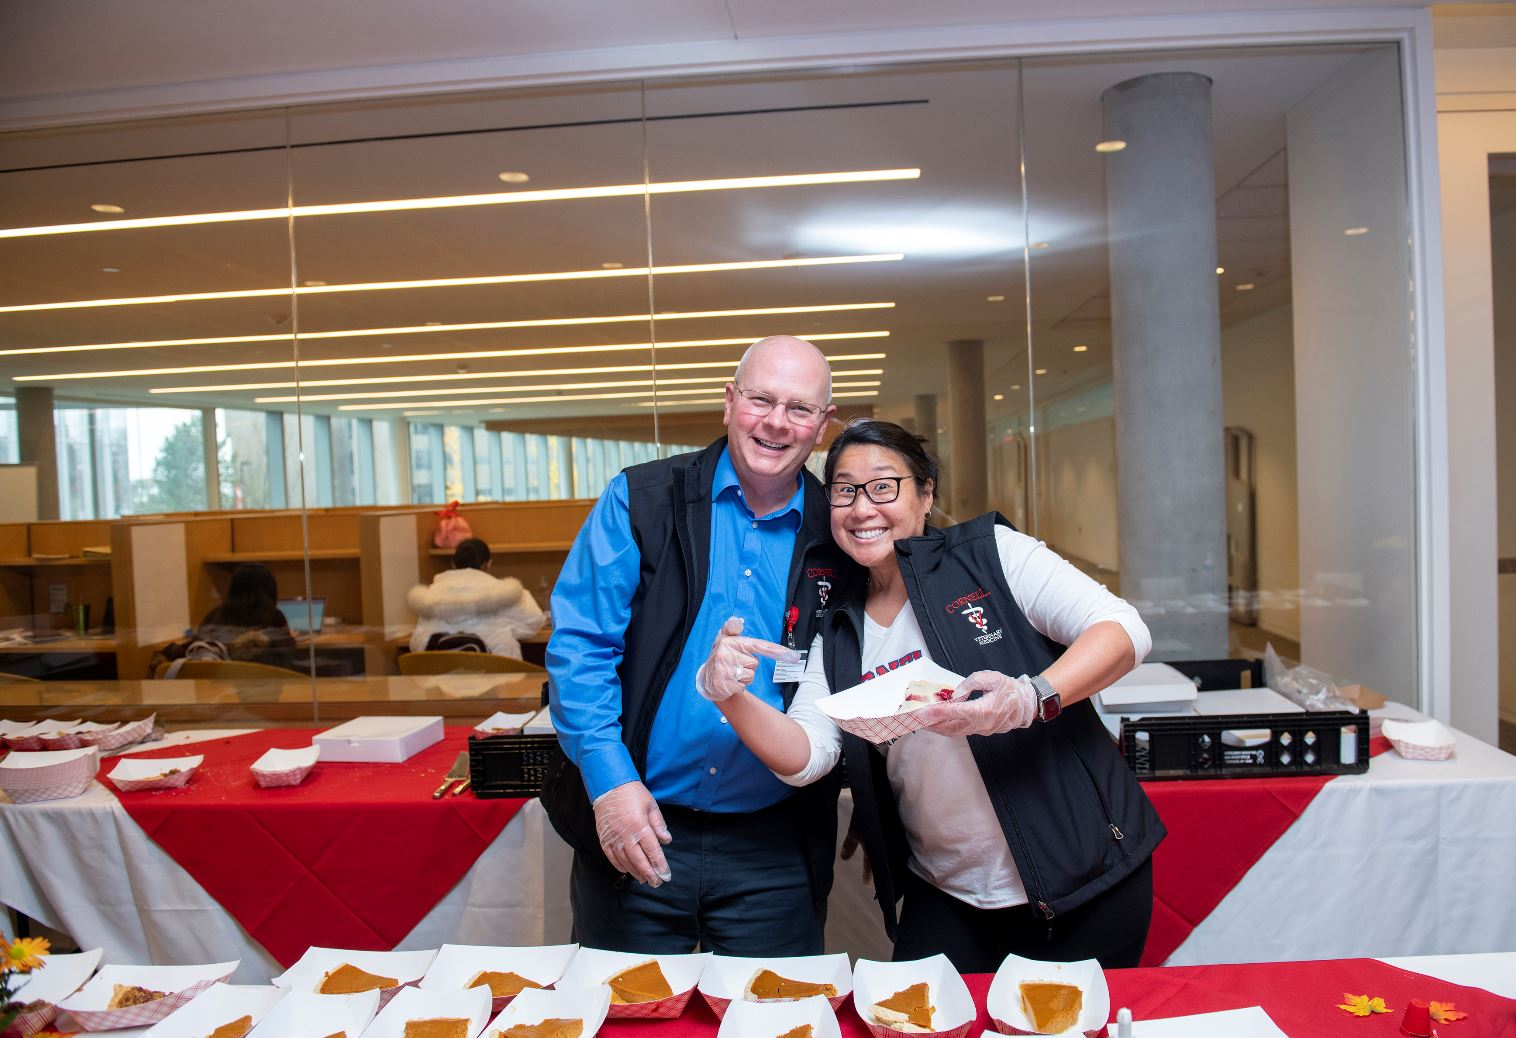 Bob Wakeman and Carolyn Chow of CVM HR serve pie at a CVM event